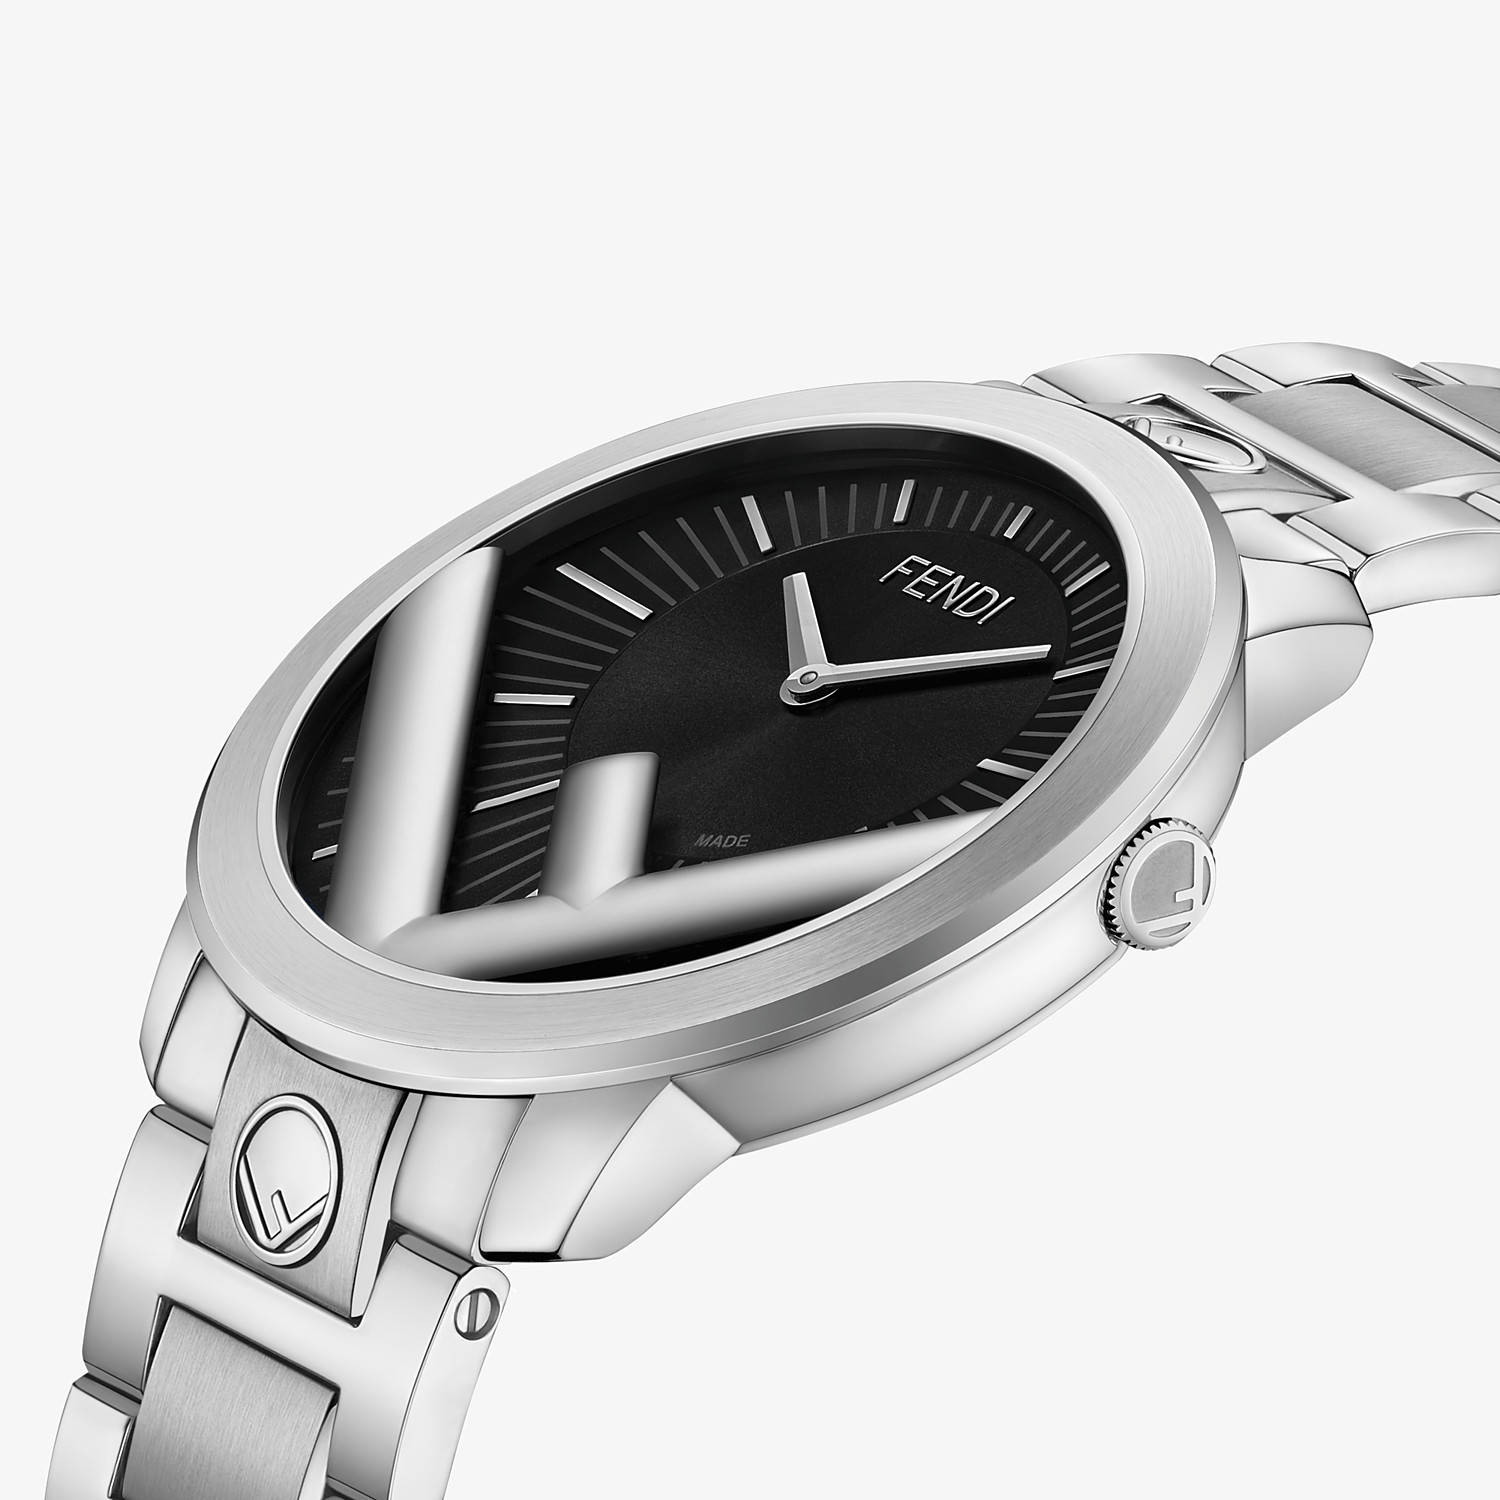 FENDI RUN AWAY - 41 mm (1.6 inch) - Watch with F is Fendi logo - view 3 detail